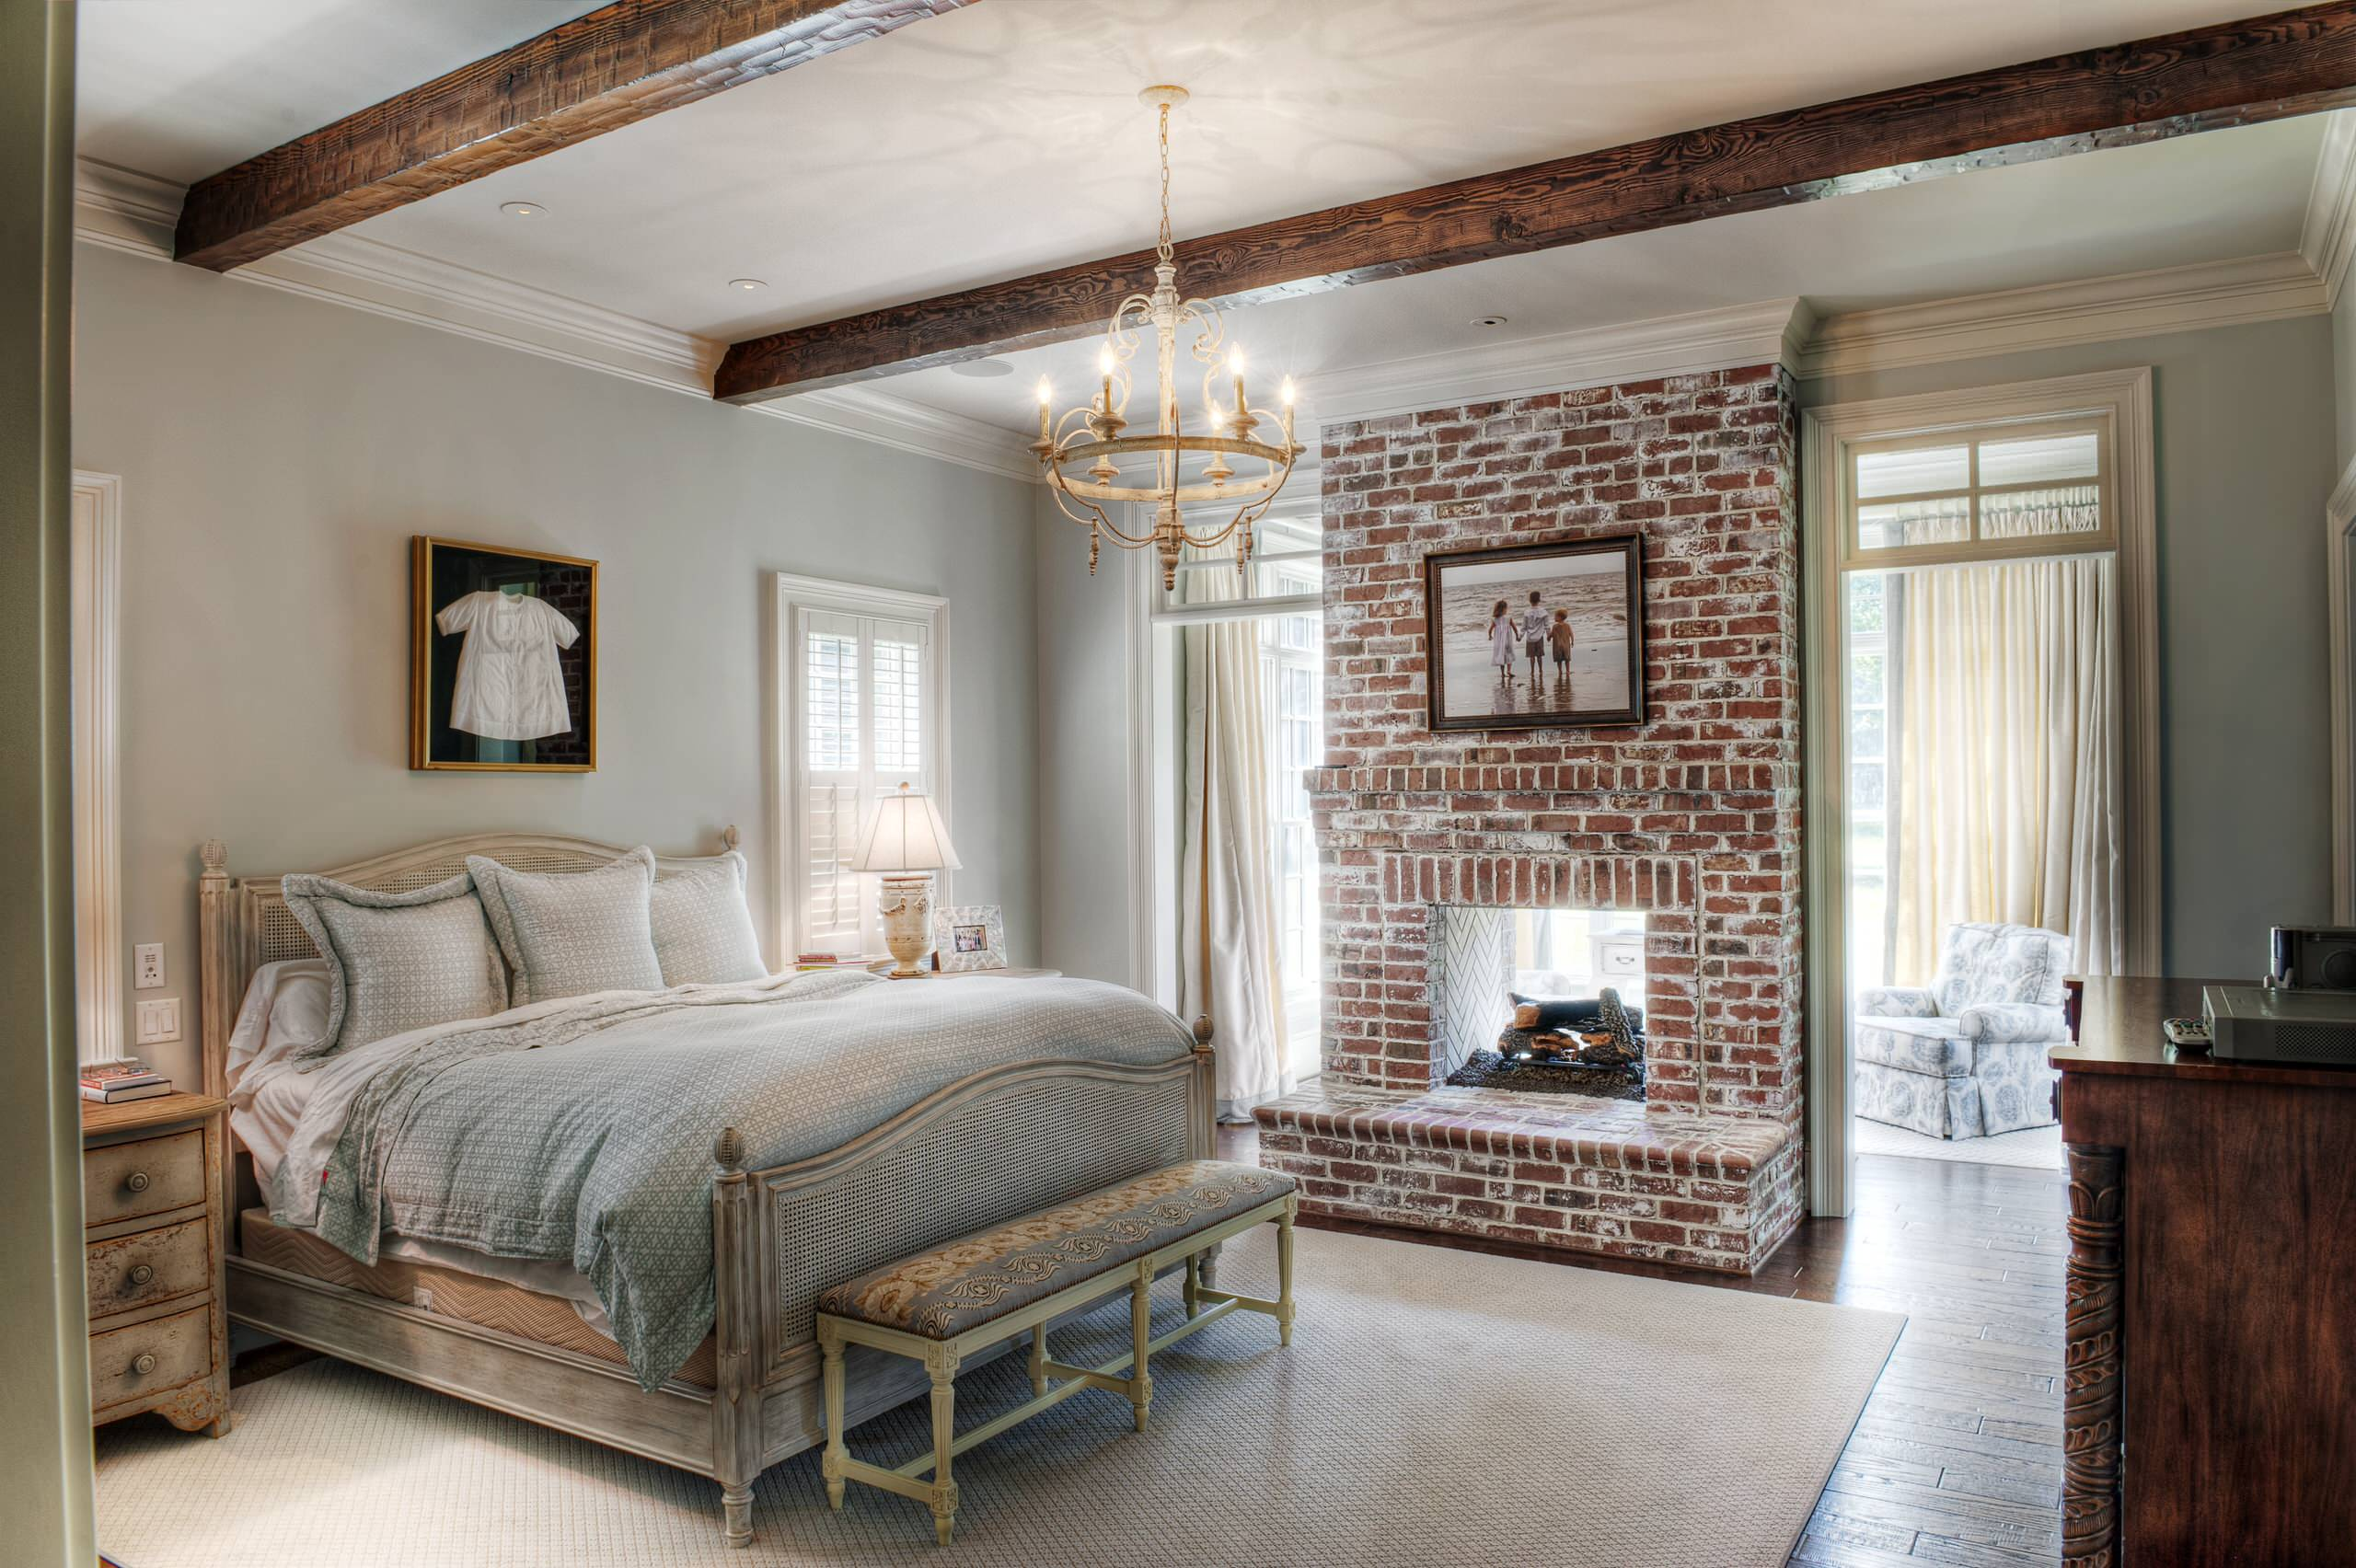 Rug Size for Queen Bed Traditional Bedroom Brick Fireplace Separate Seating Area